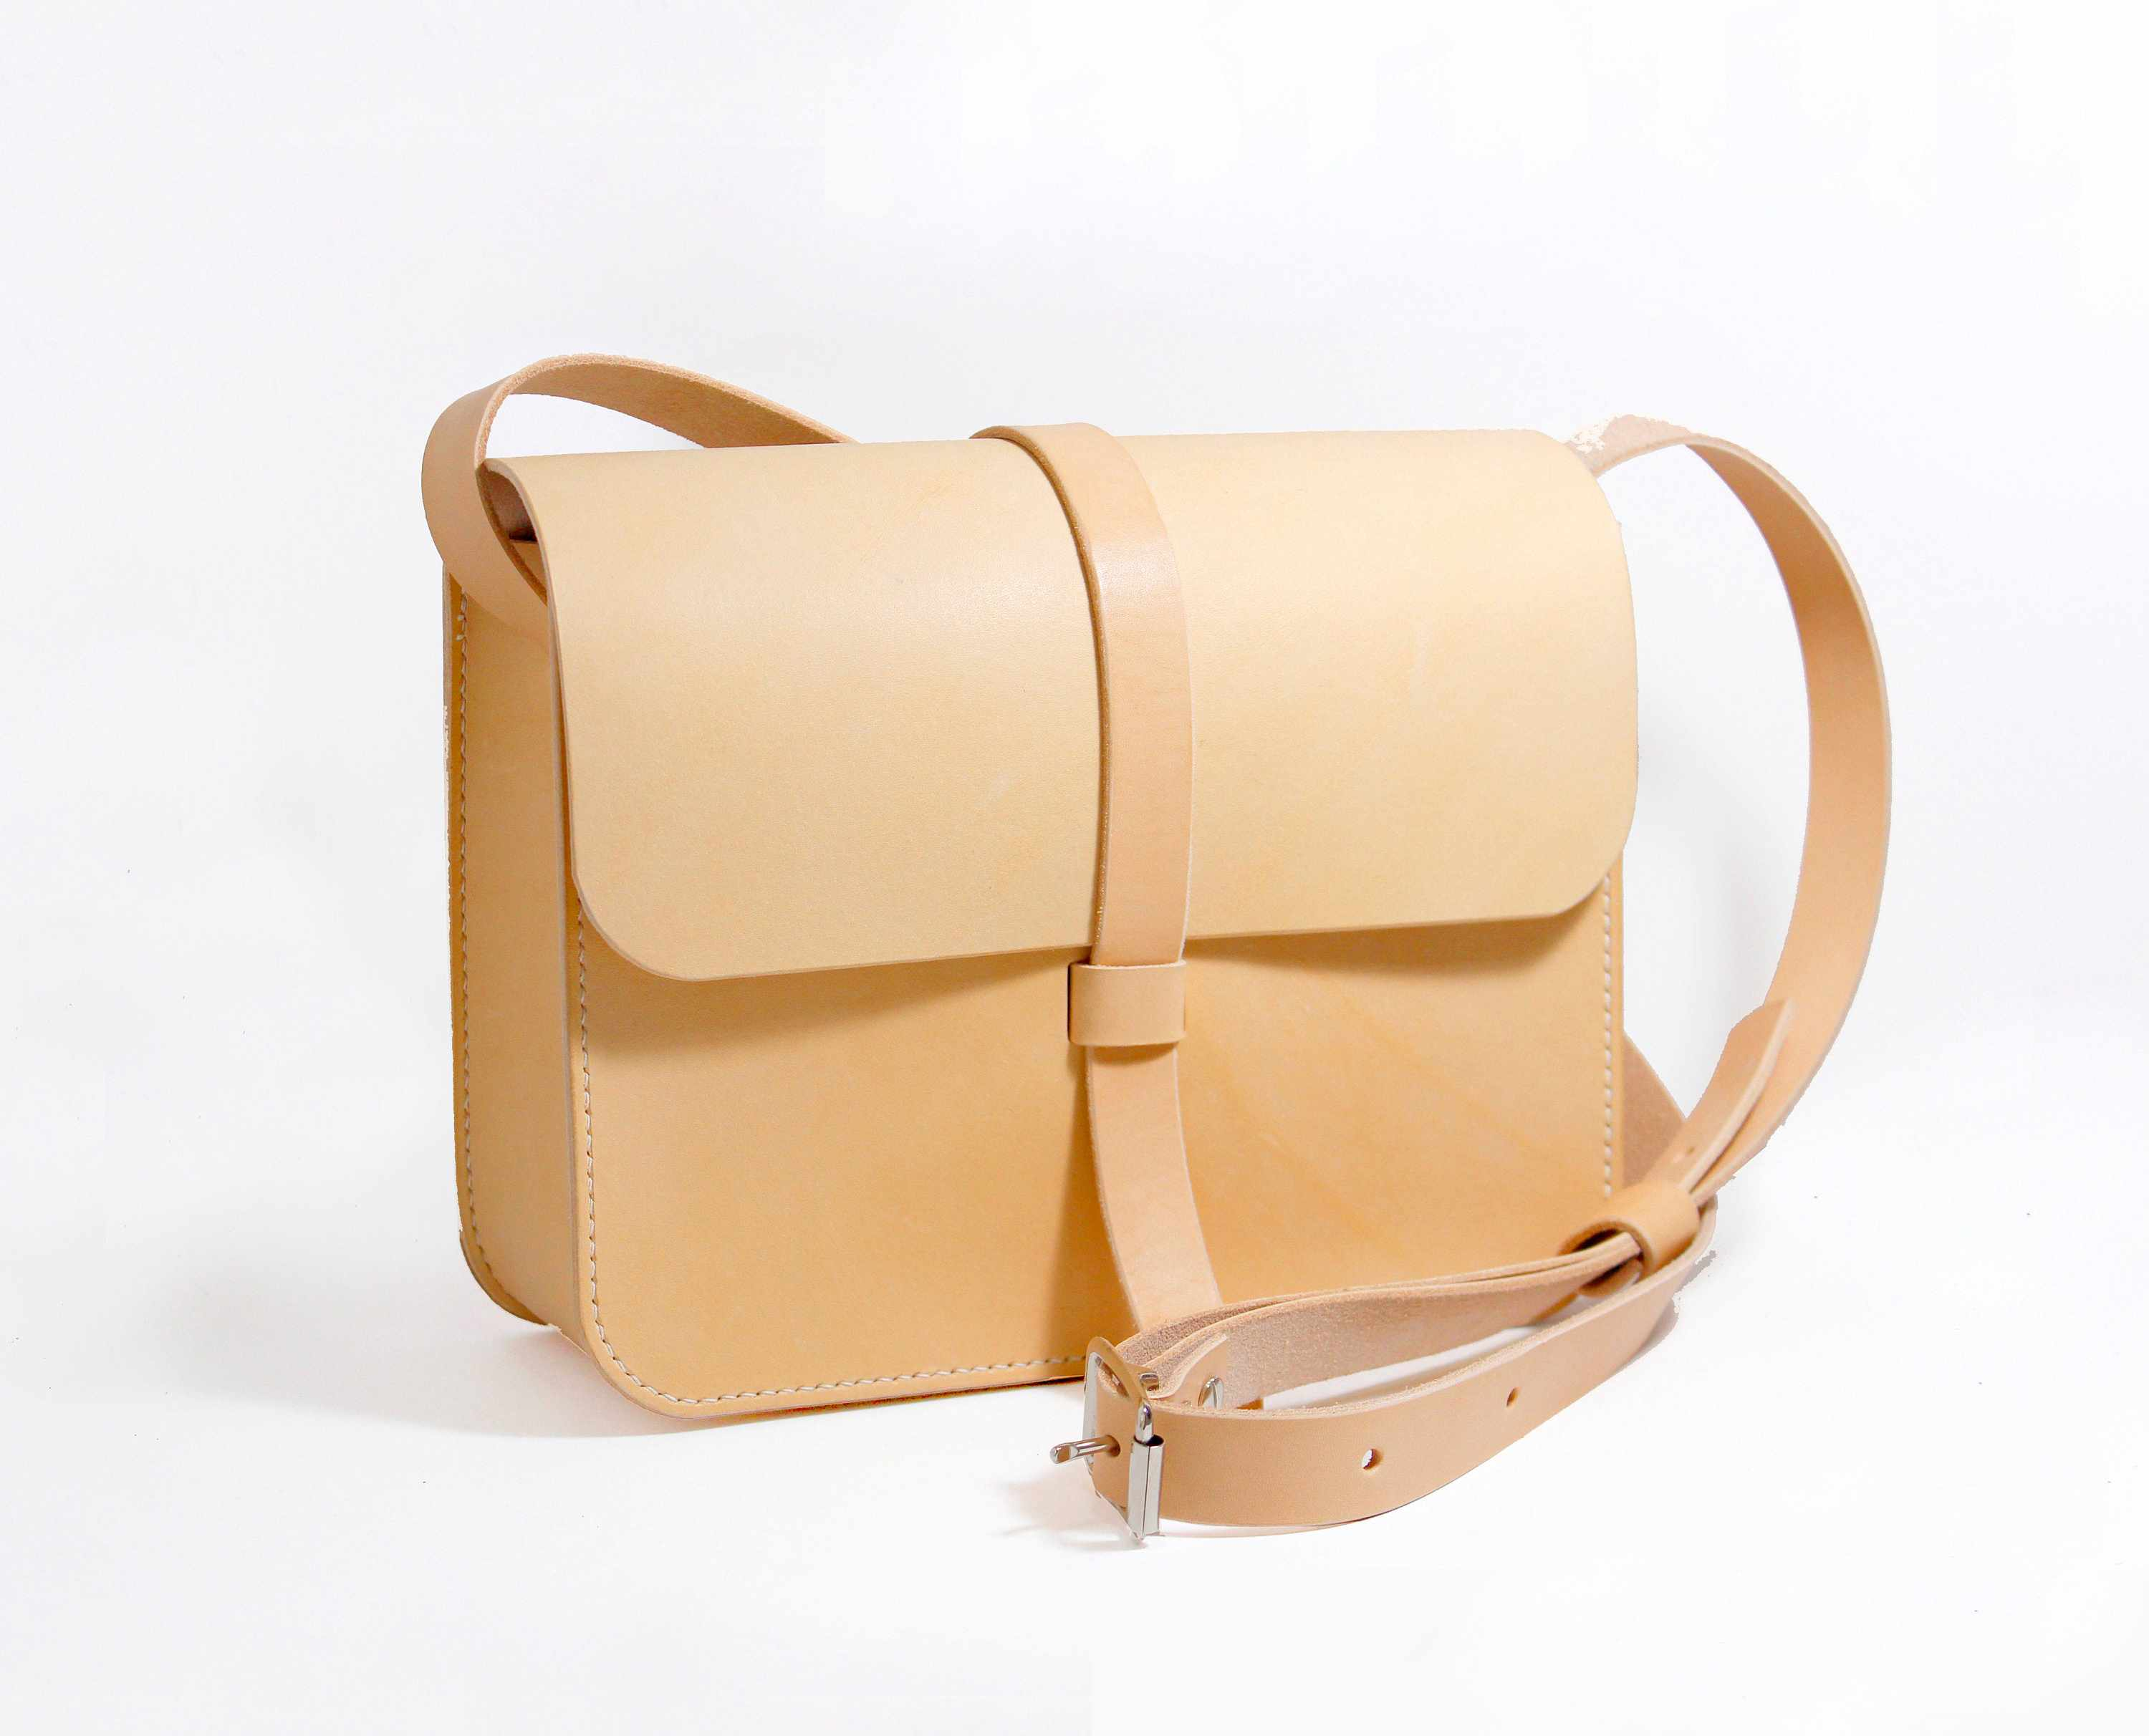 DIY Leather Cross-Body Bag with Strap